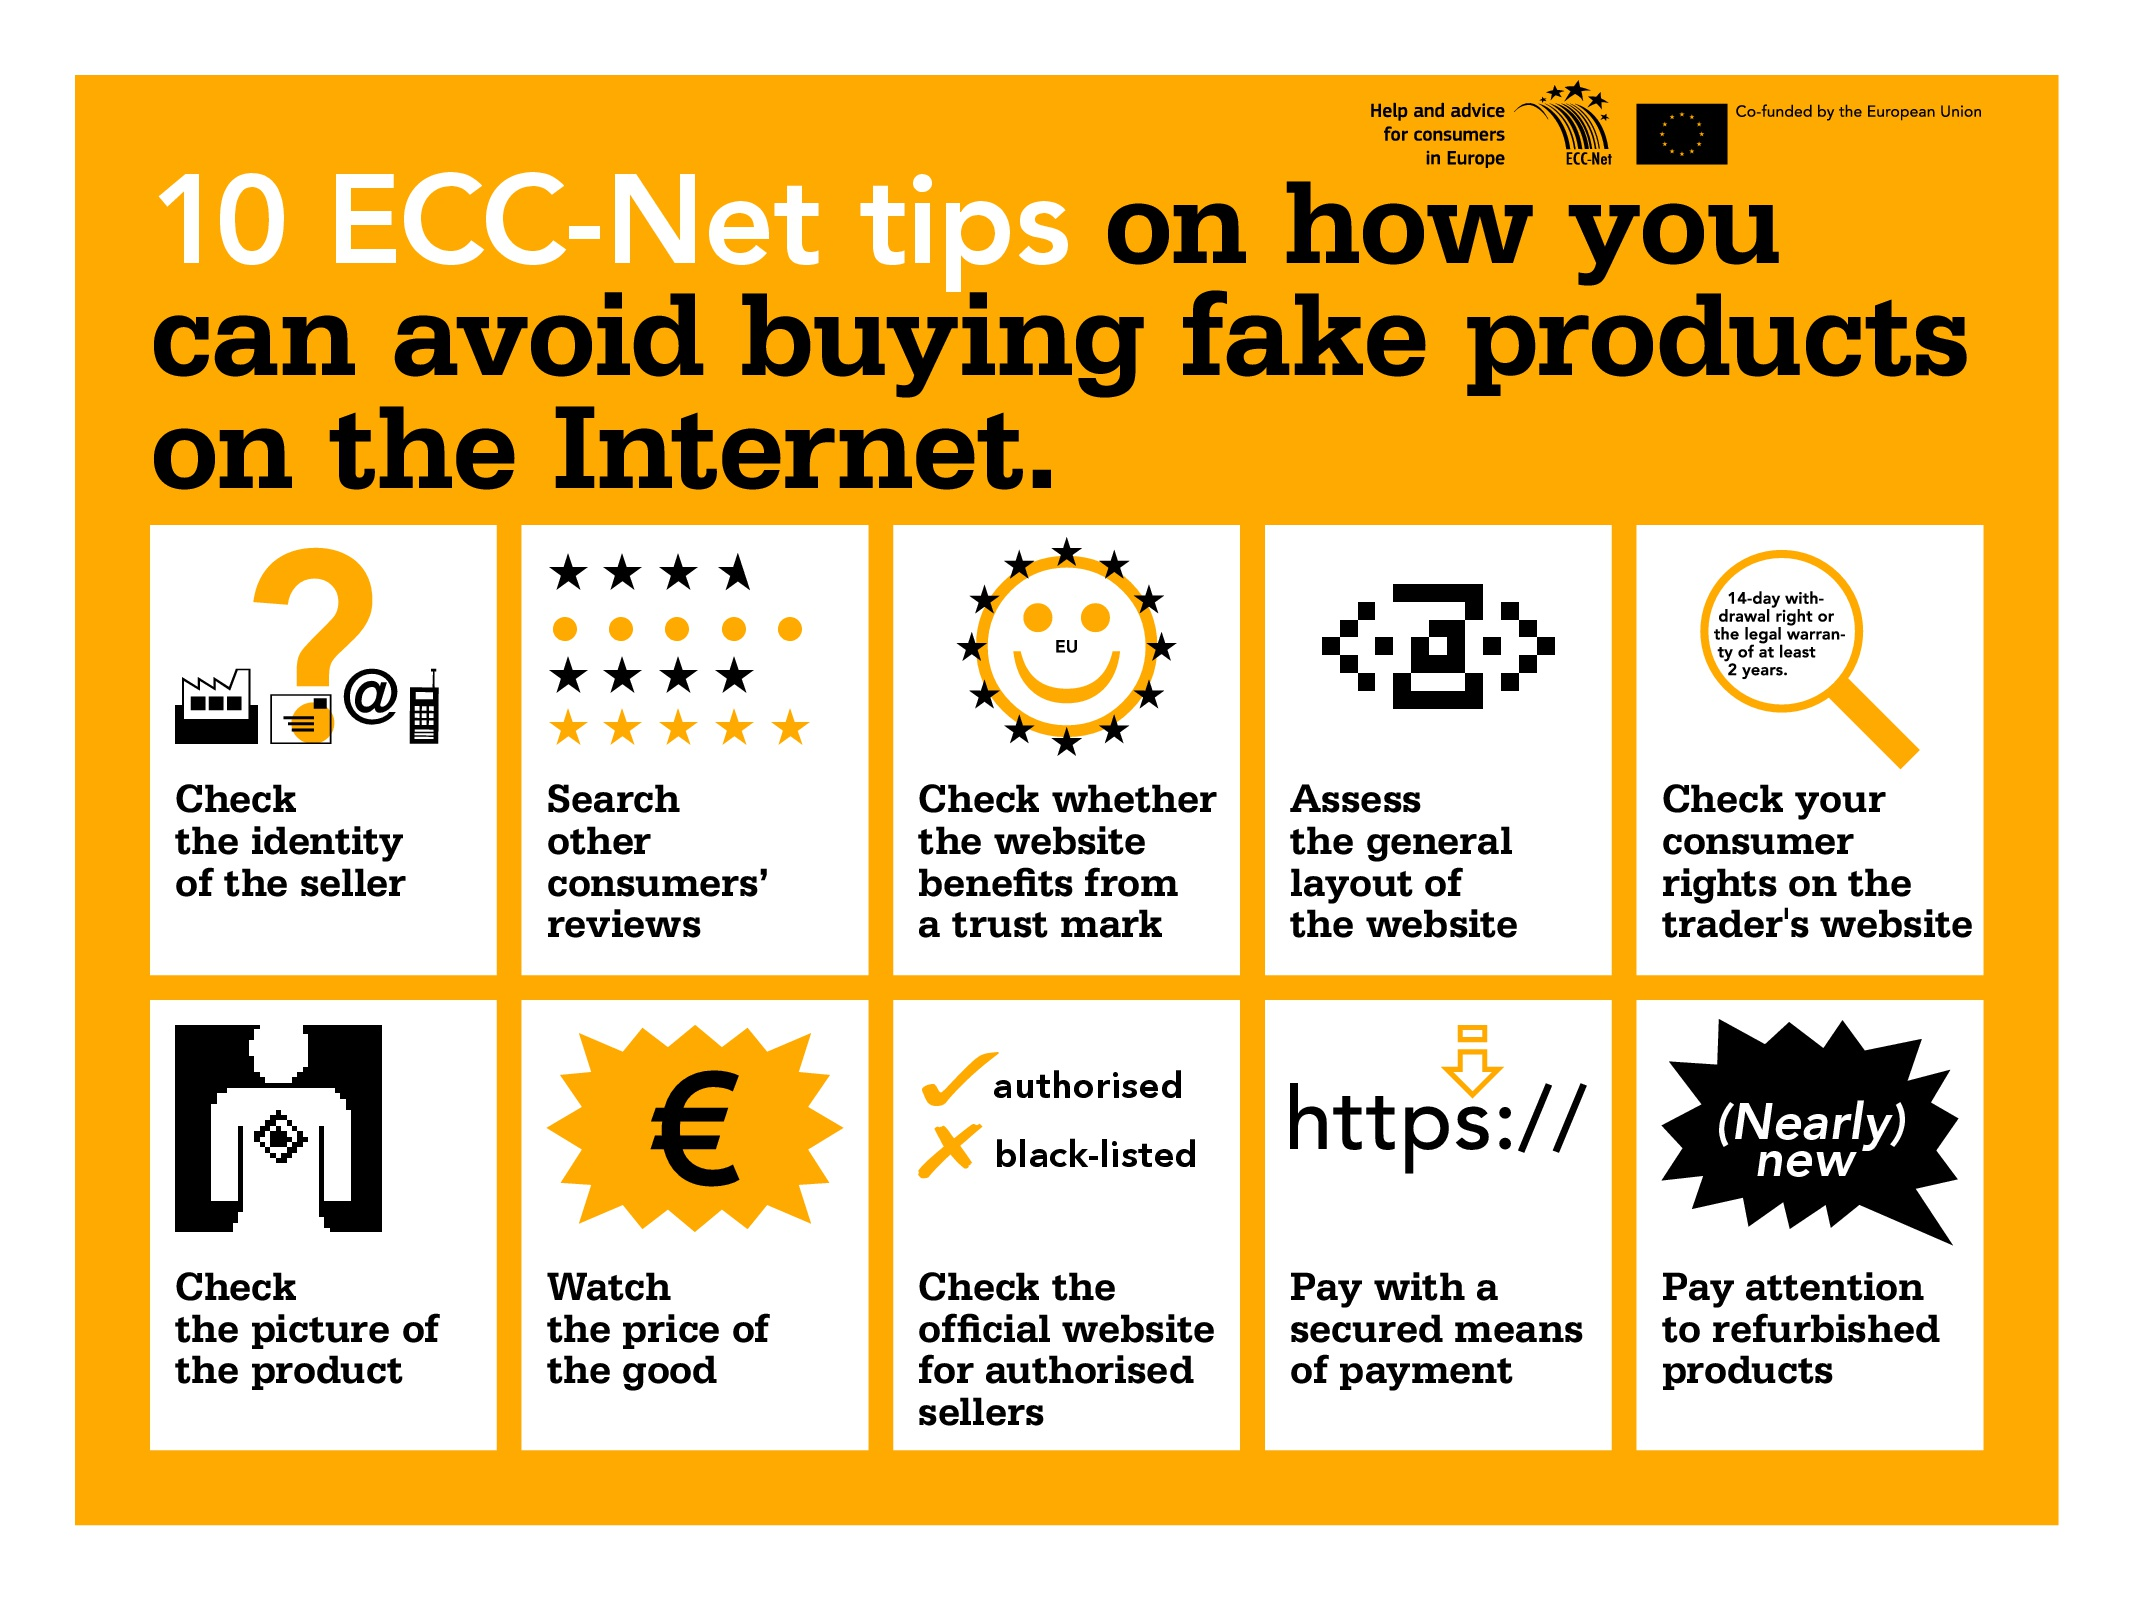 Is it safe to buy counterfeit goods? - European Consumer Centre